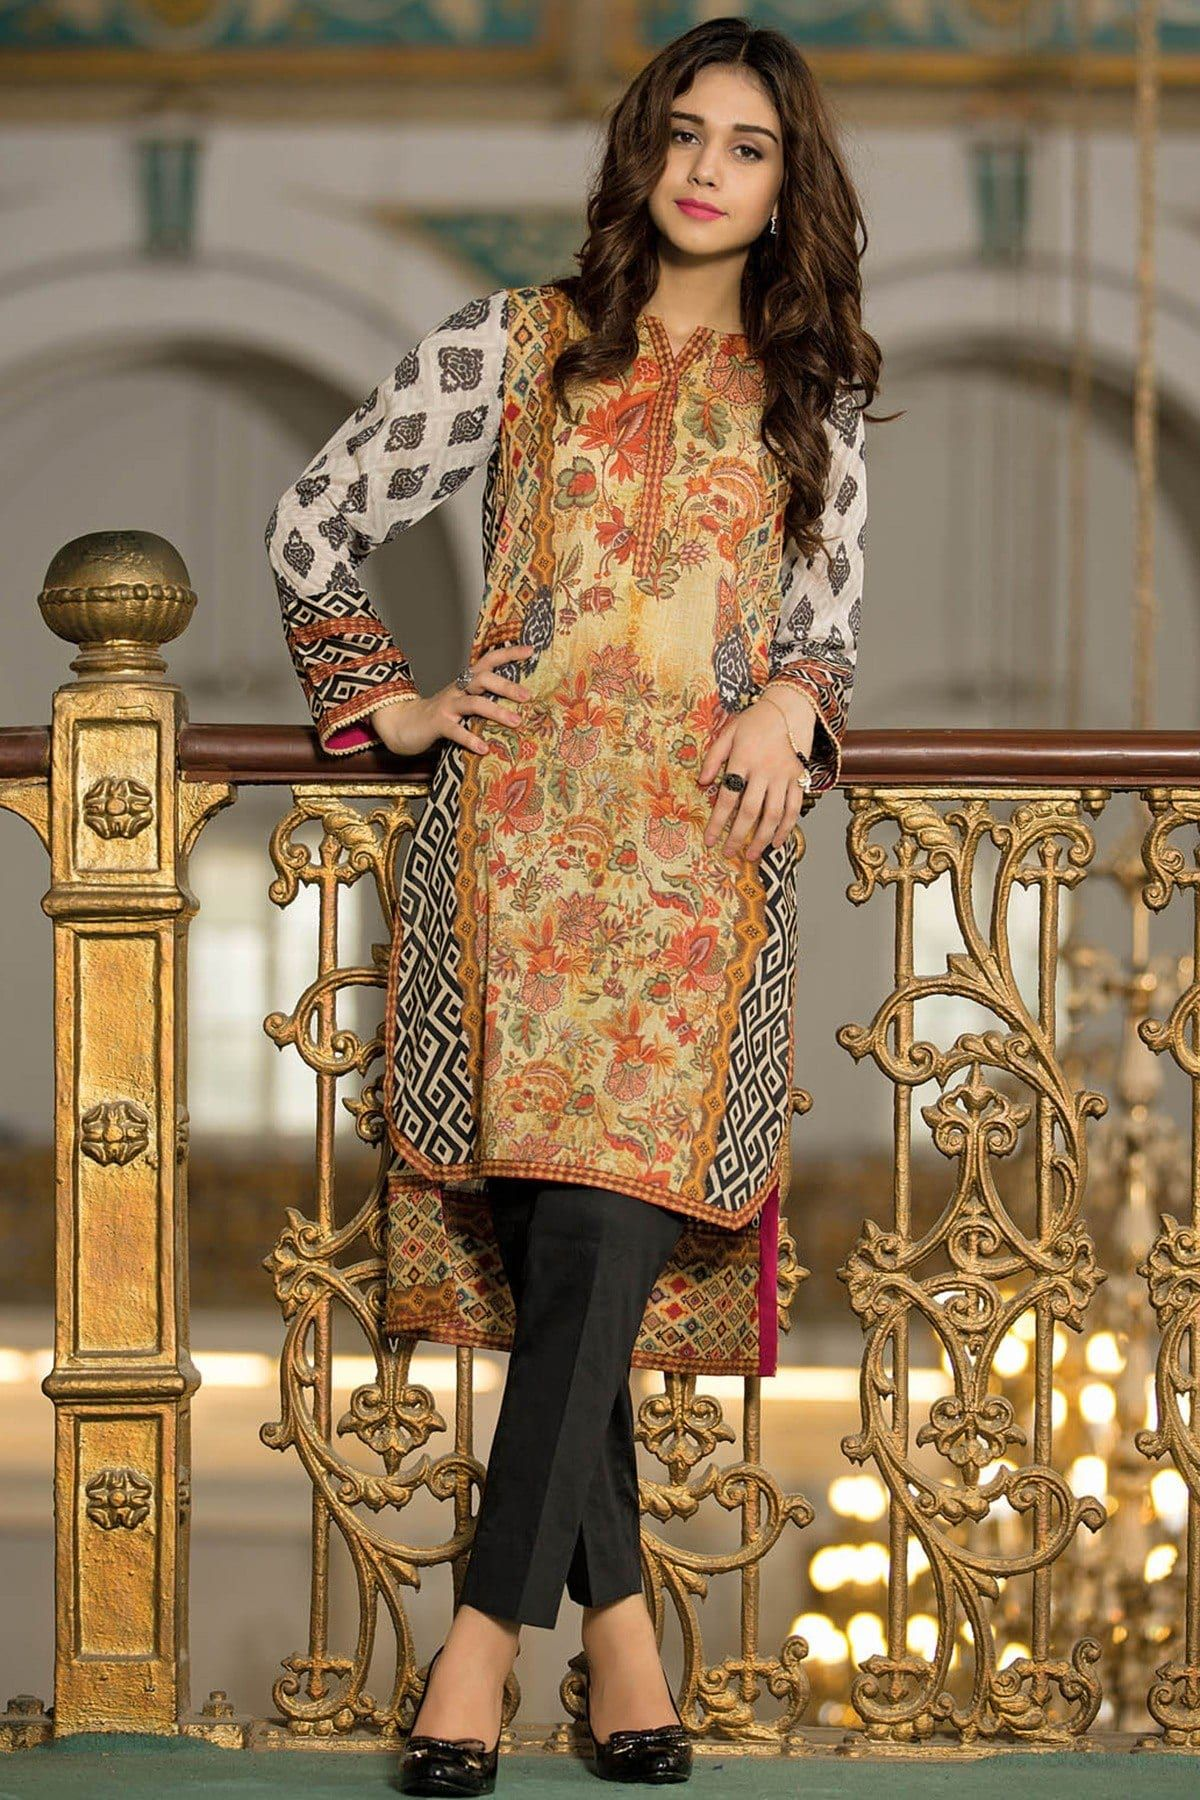 Latest Kurti Designs 2020 From Top 20 Kurti Designers These Days Kurti Designs Latest Kurti Designs Traditional Indian Outfits